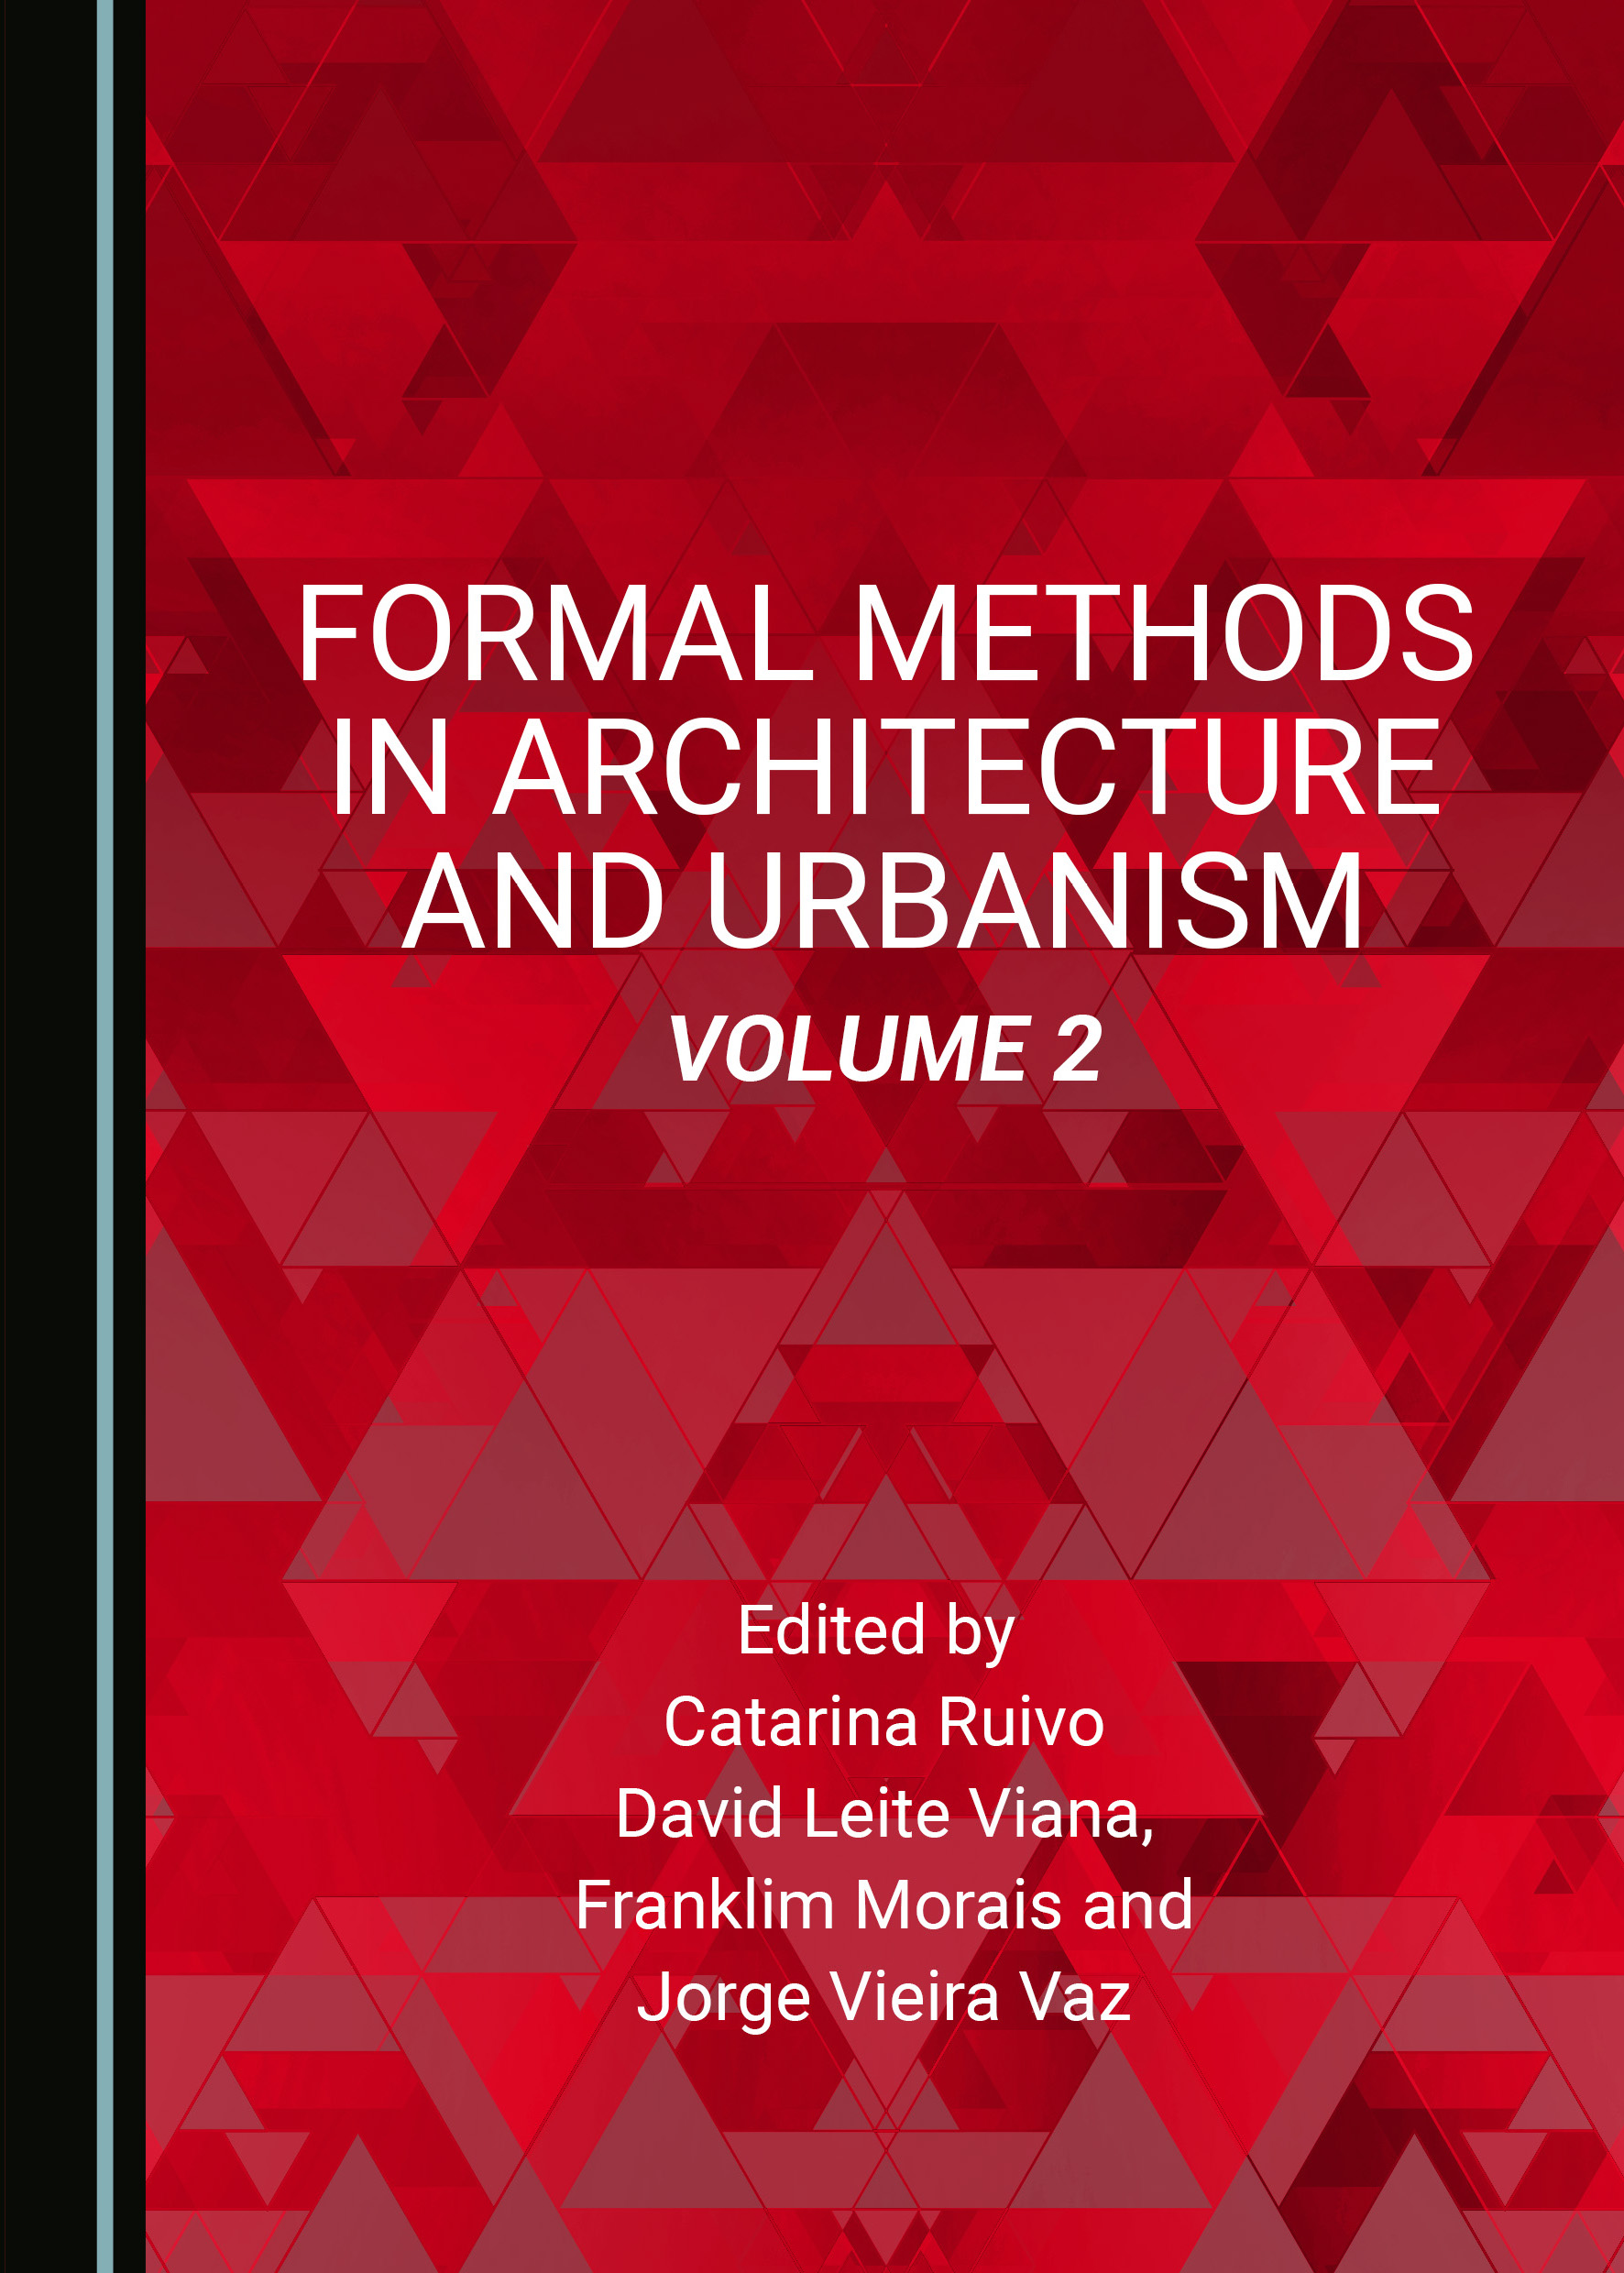 Formal Methods in Architecture and Urbanism, Volume 2